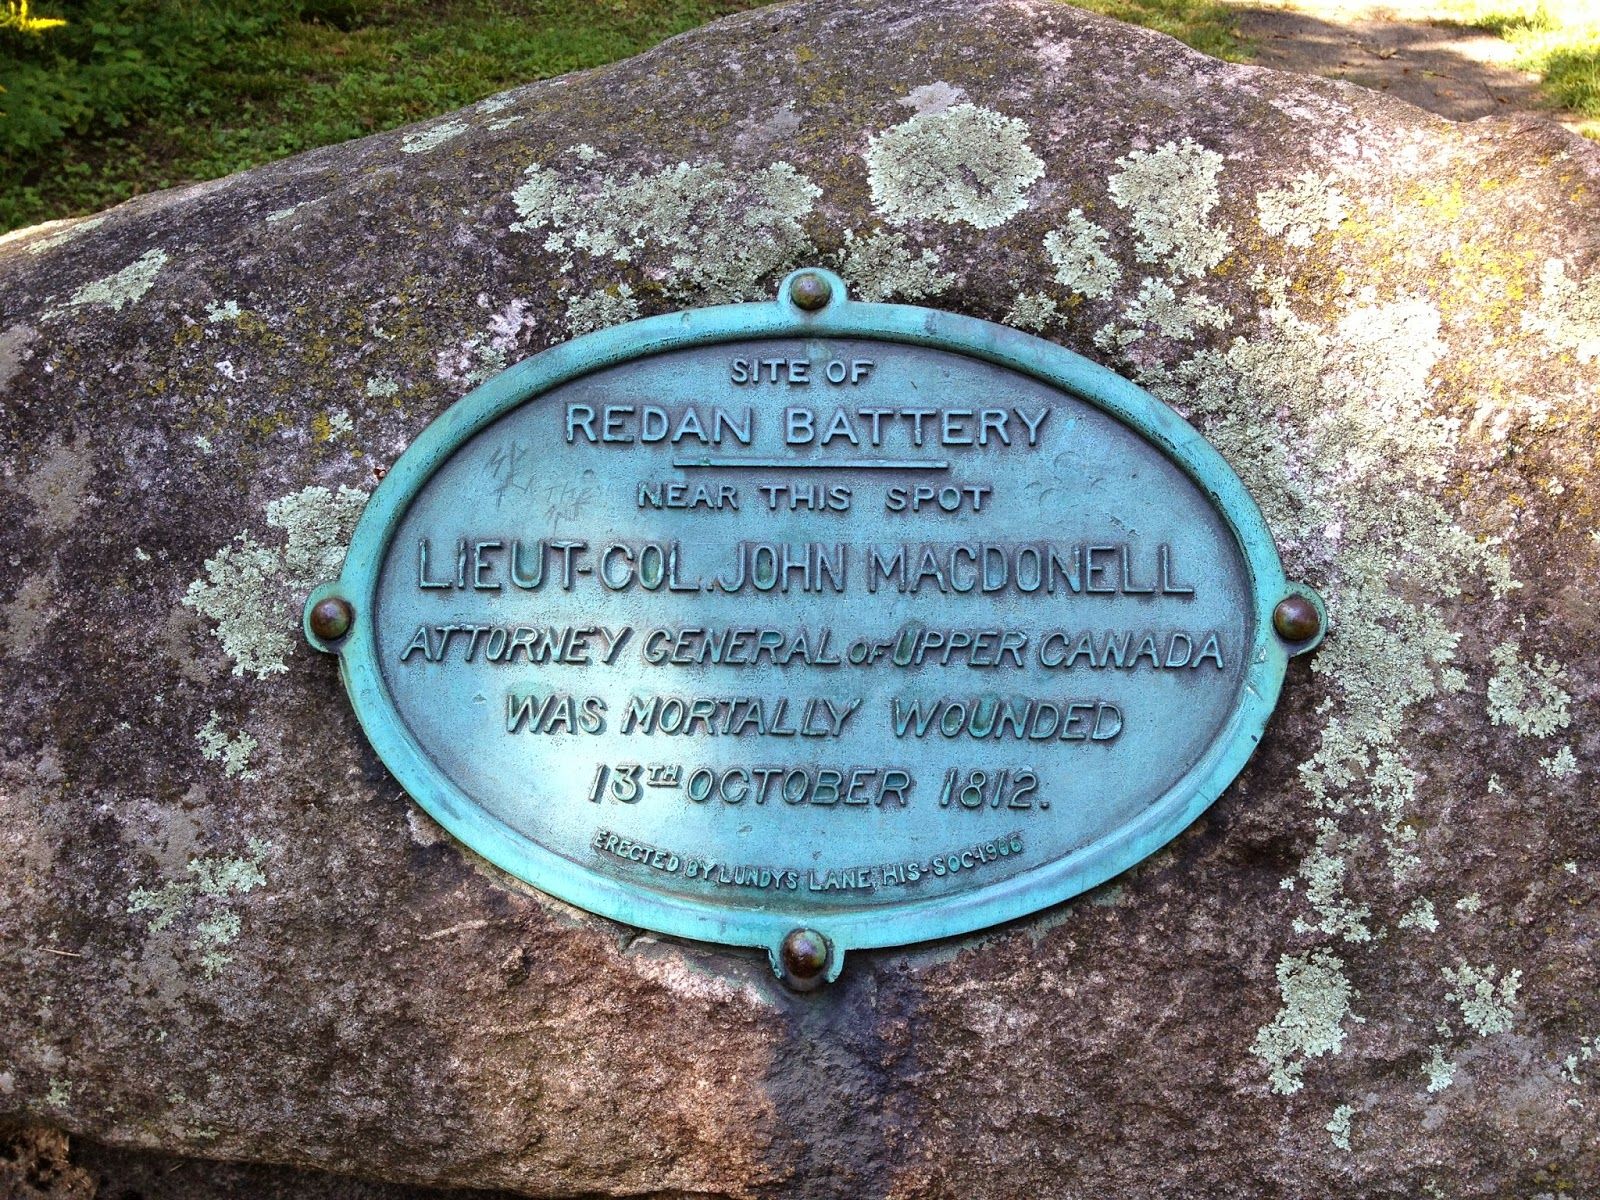 Colour photo of stone with plaque on it stating that Macdonell fell at this spot.